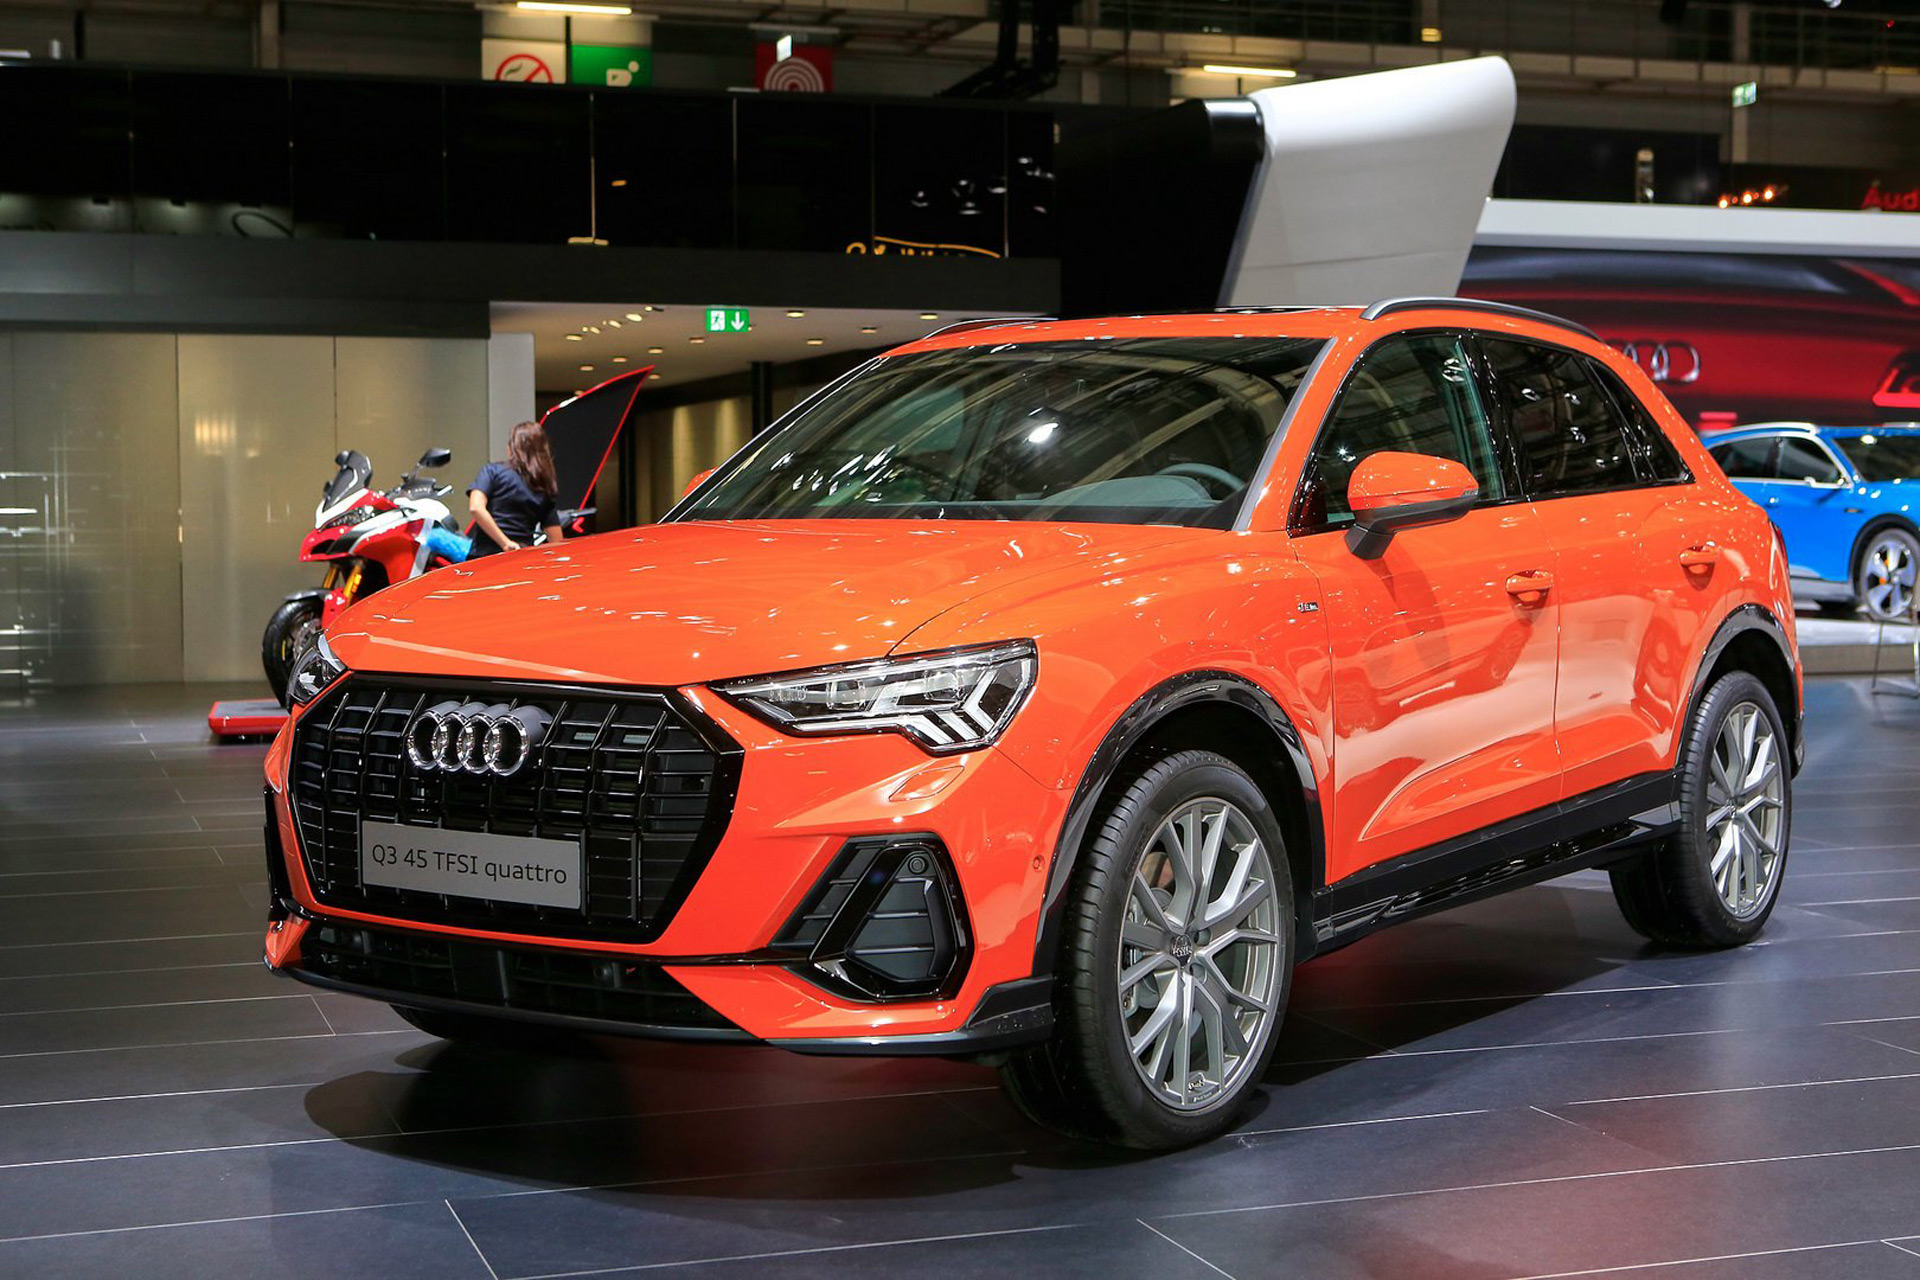 71 The Best 2020 Audi Q3 Usa Wallpaper